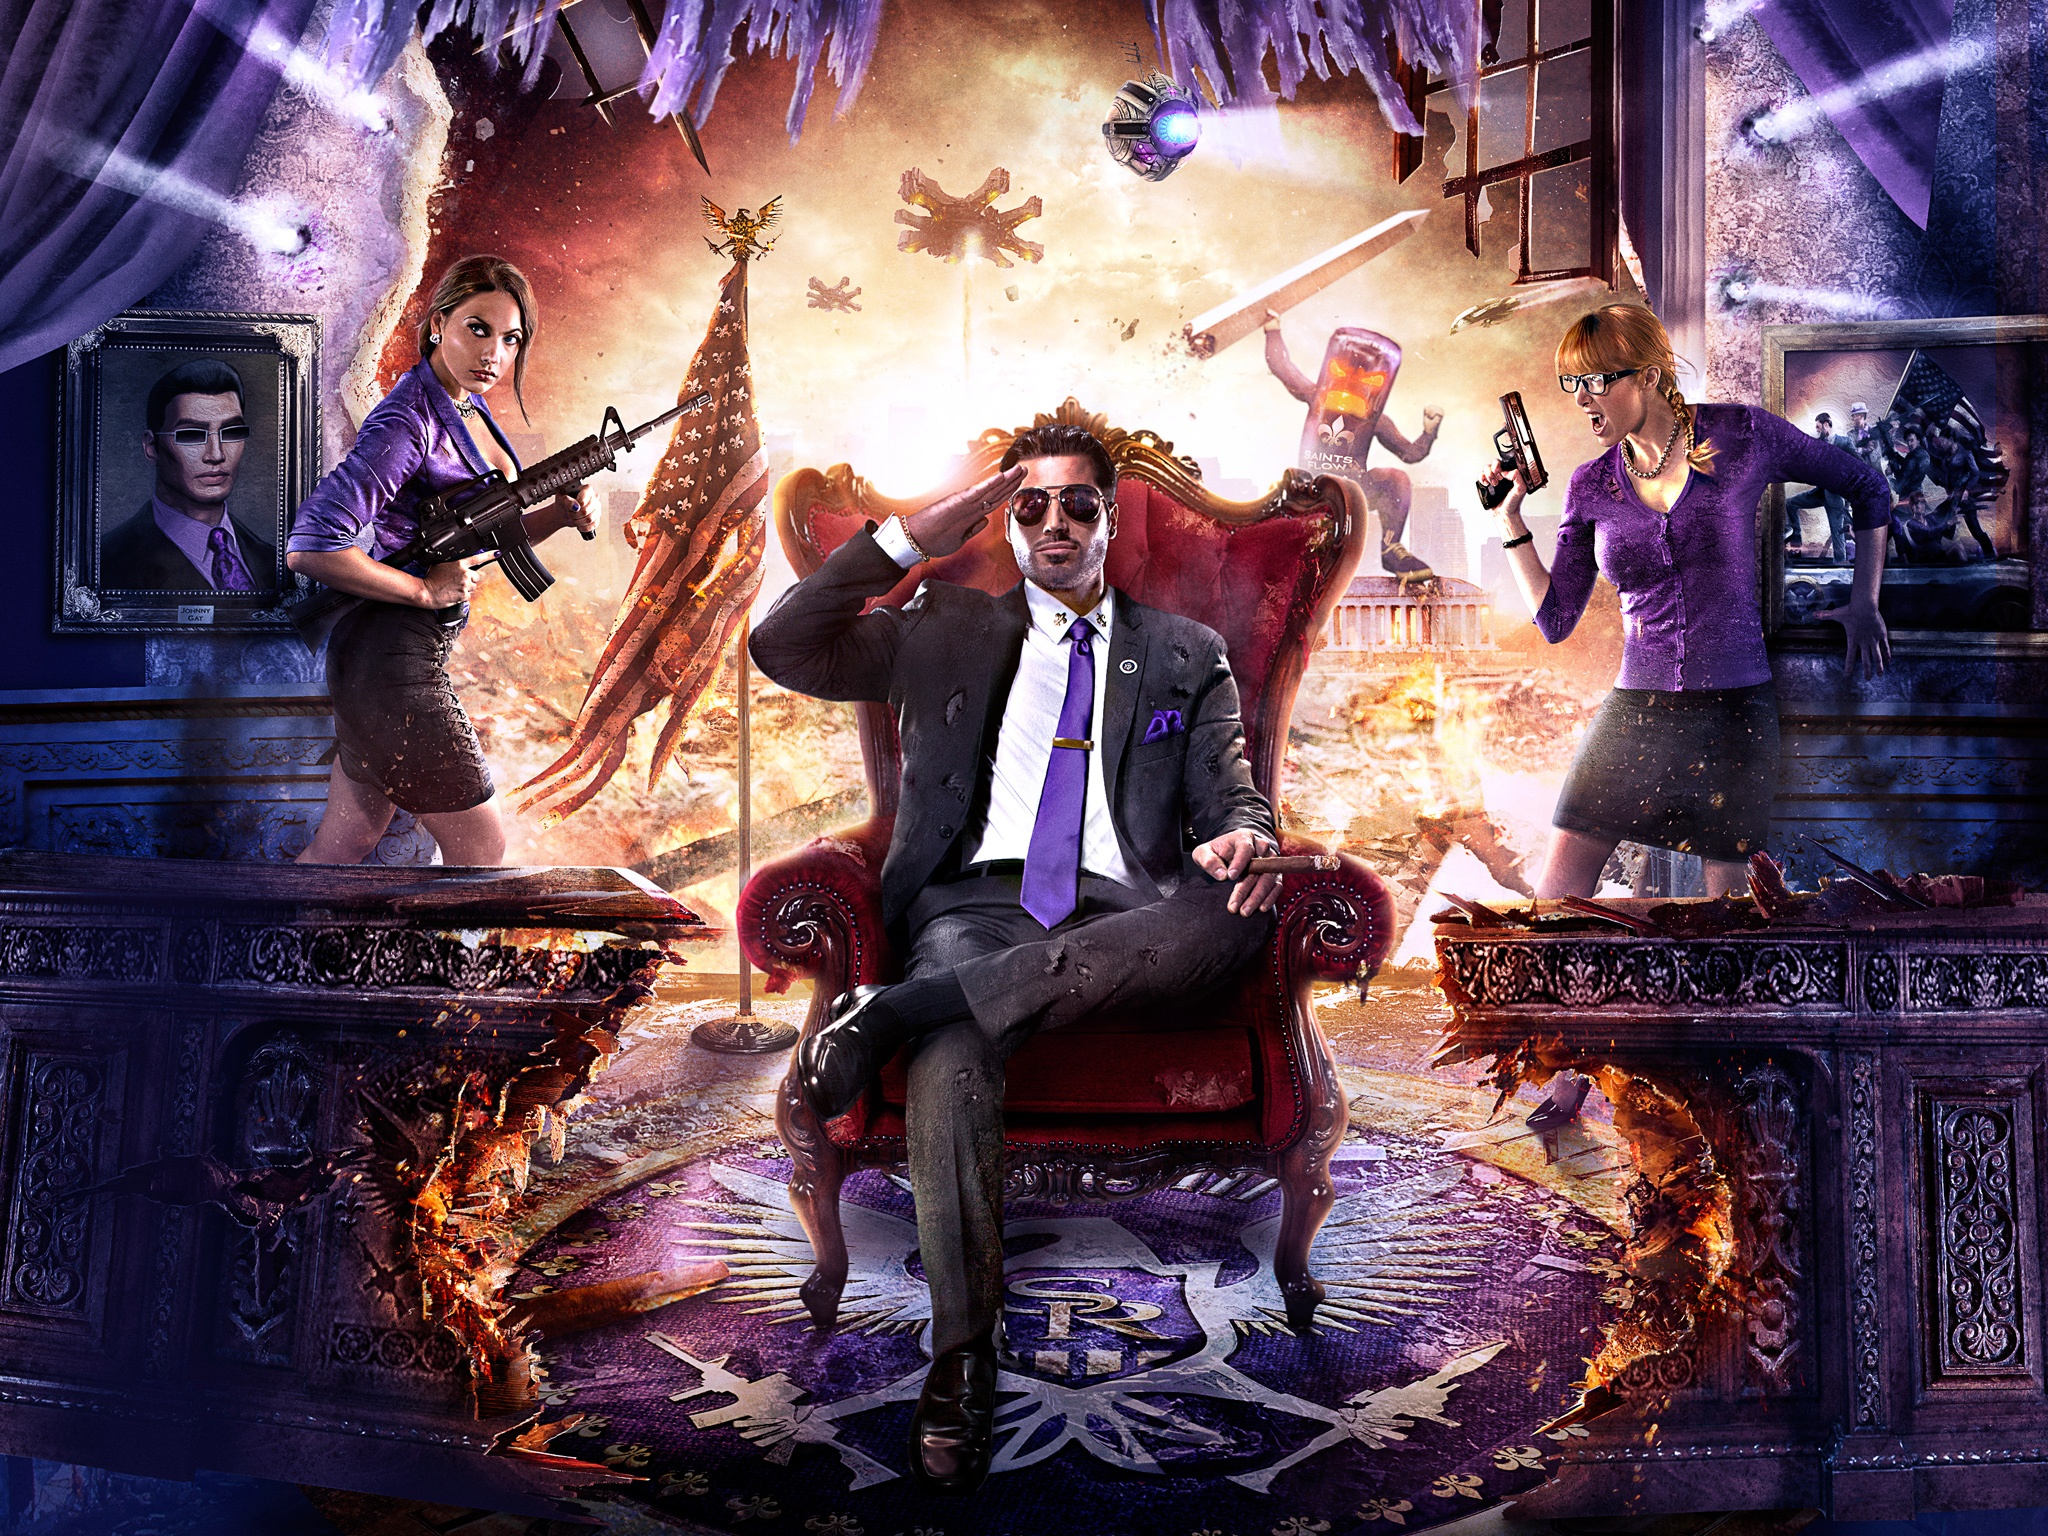 Saints Row Iv Artwork Wallpapers In Jpg Format For Free Download